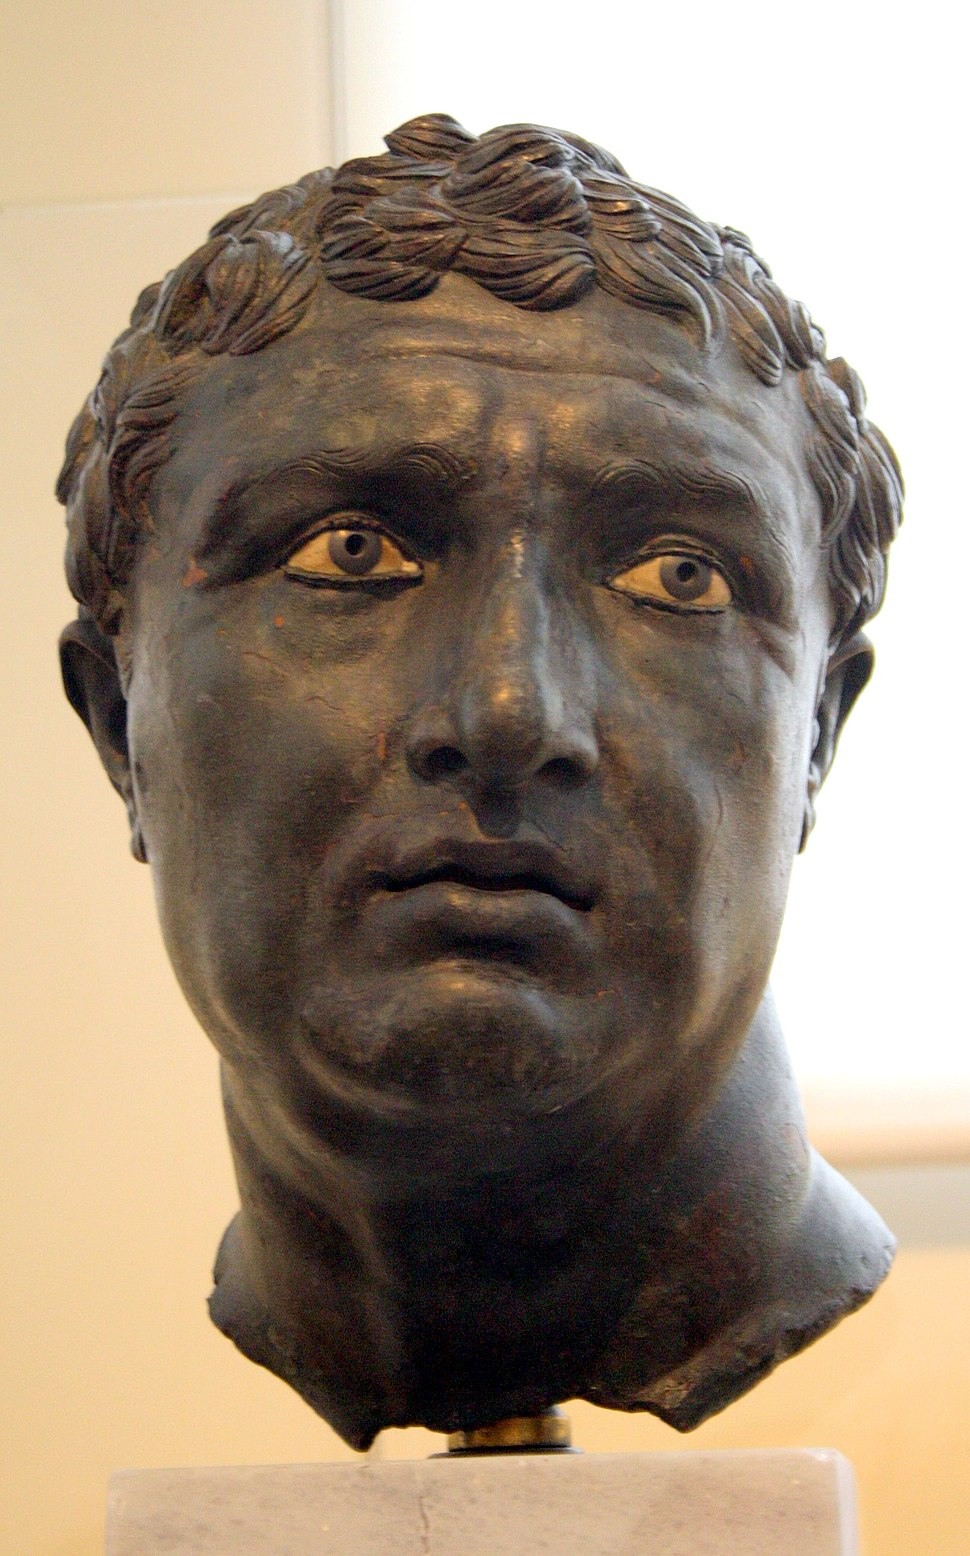 1415 - Archaeological Museum, Athens - Bronze portrait - Photo by Giovanni Dall'Orto, Nov 11 2009